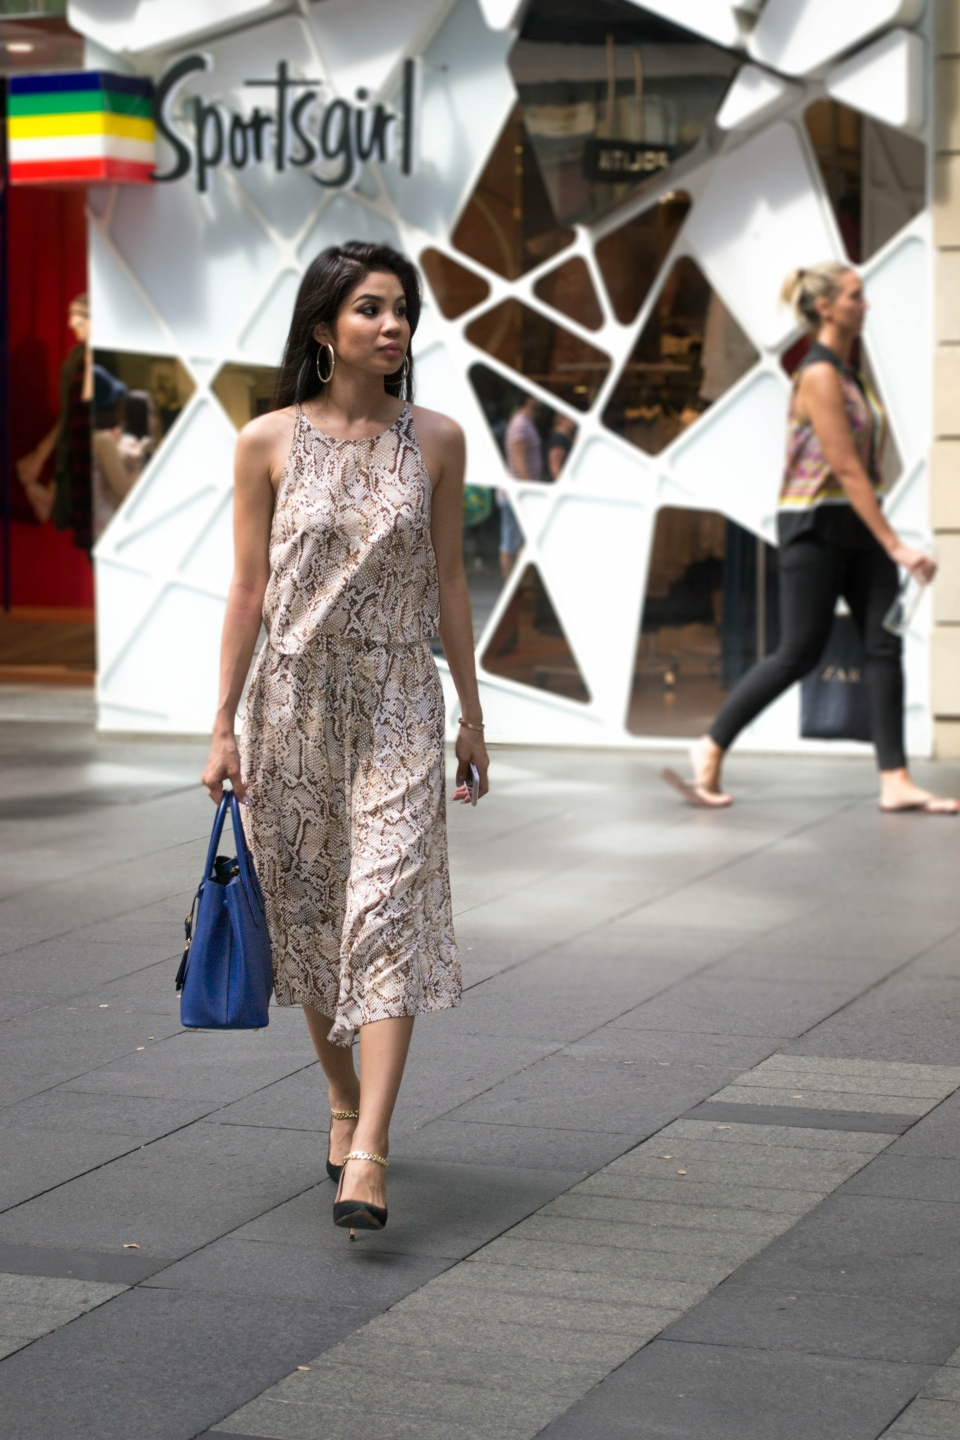 NSW: Piyane Ung, blogger, Pitt St. Photo: Alice Sciberras